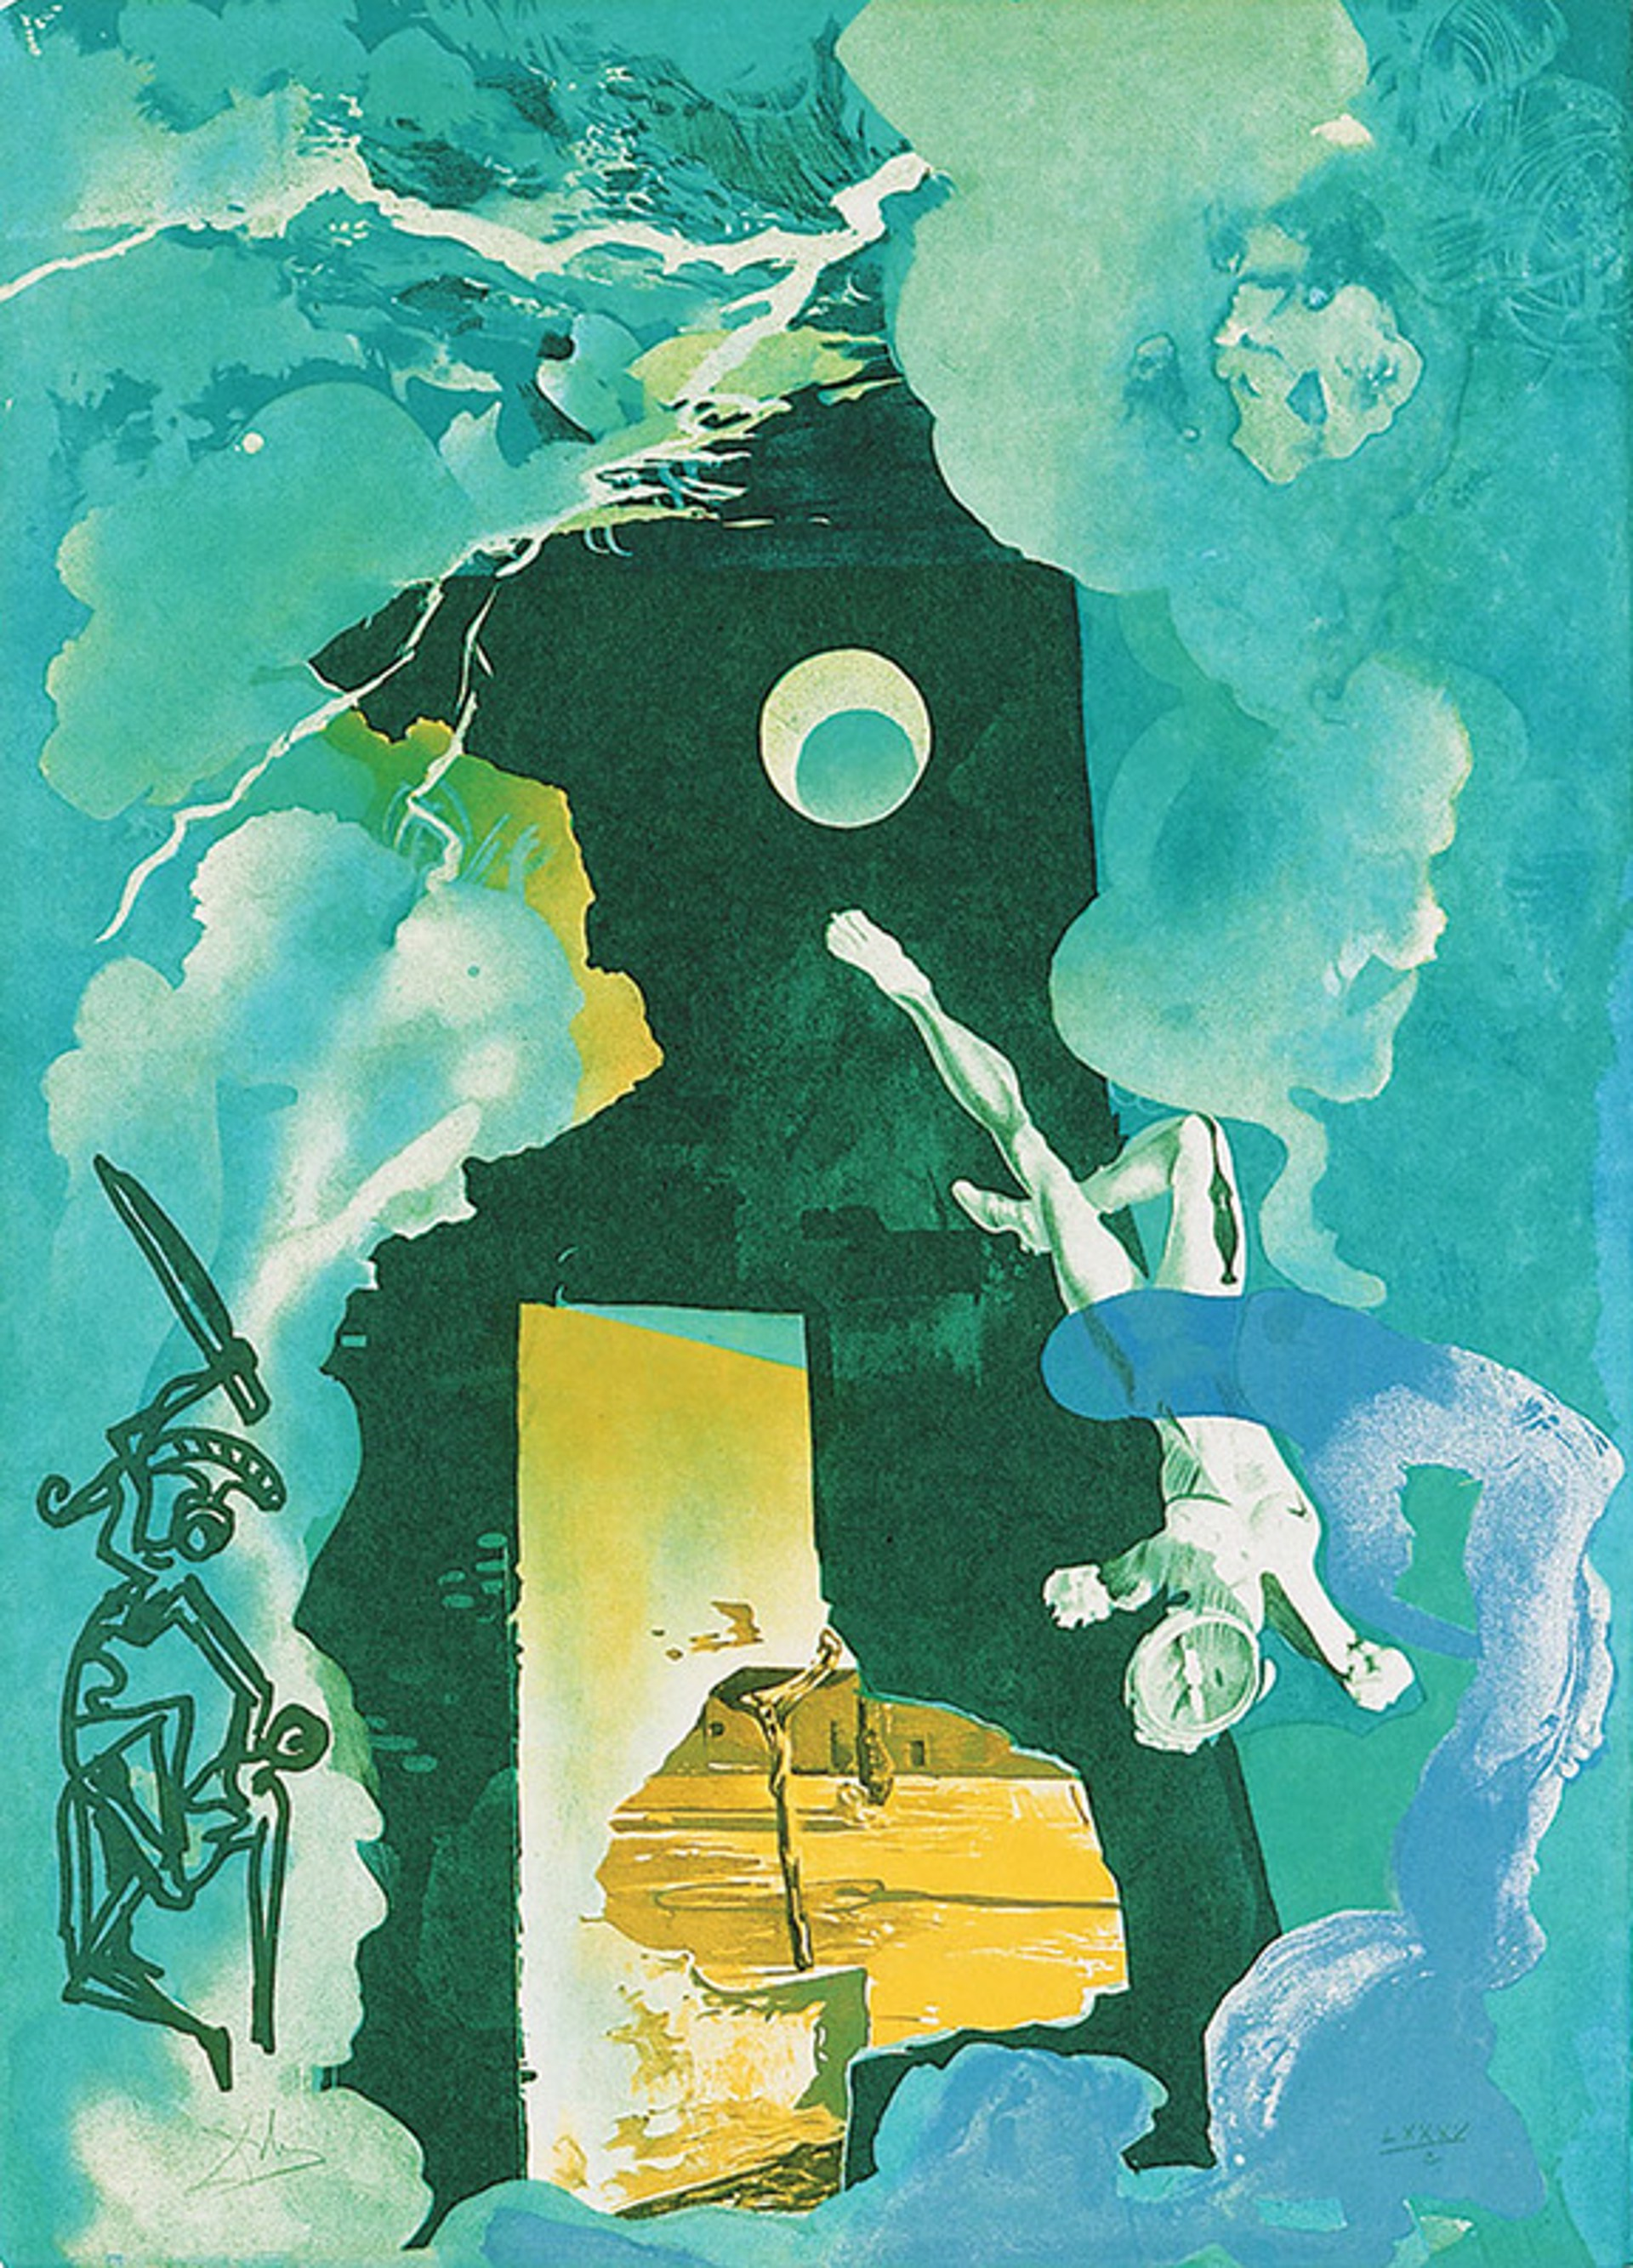 The Eternity of Love from the Trilogy of Love Portfolio by Salvador Dali (1904 - 1989)